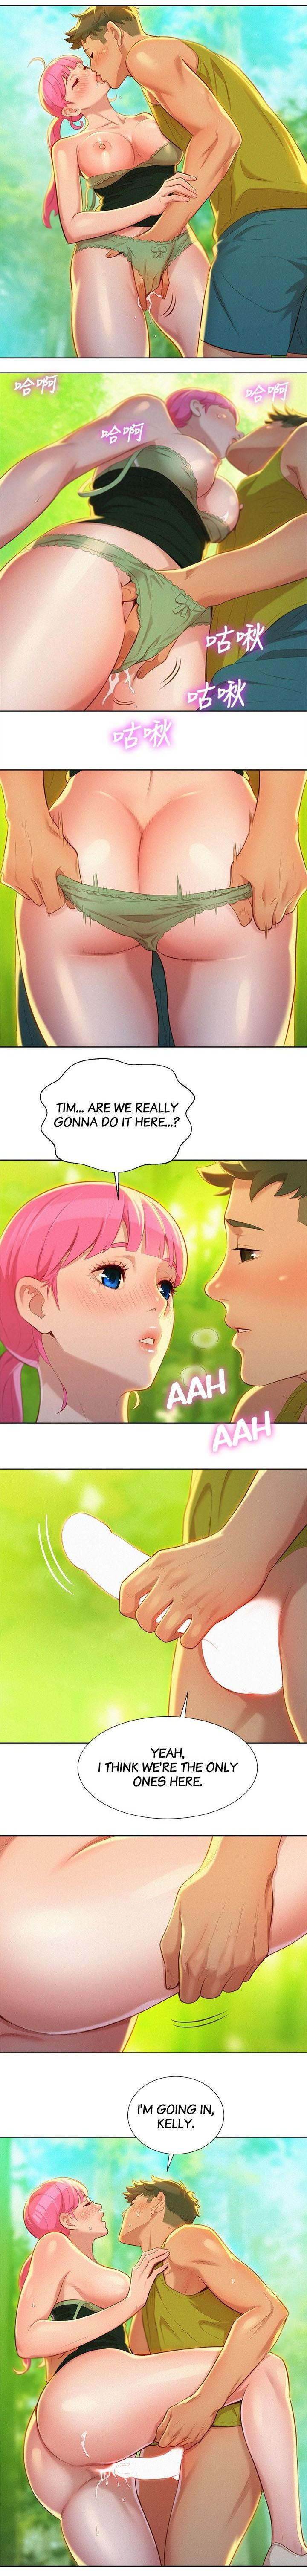 What do you Take me For? Ch.40/? 228